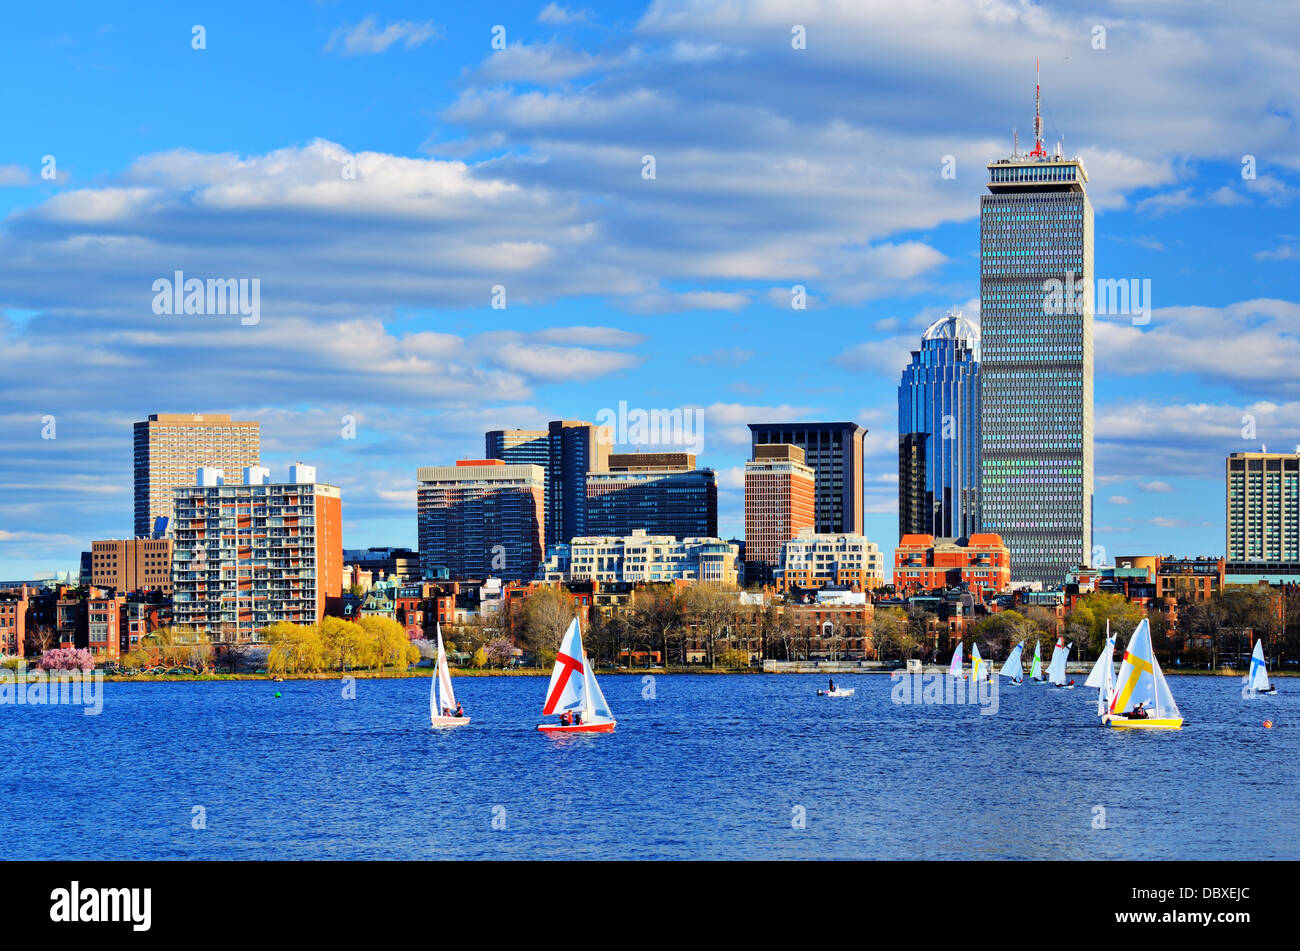 Boston, Massachusetts Skyline at Back Bay district. Photo Stock